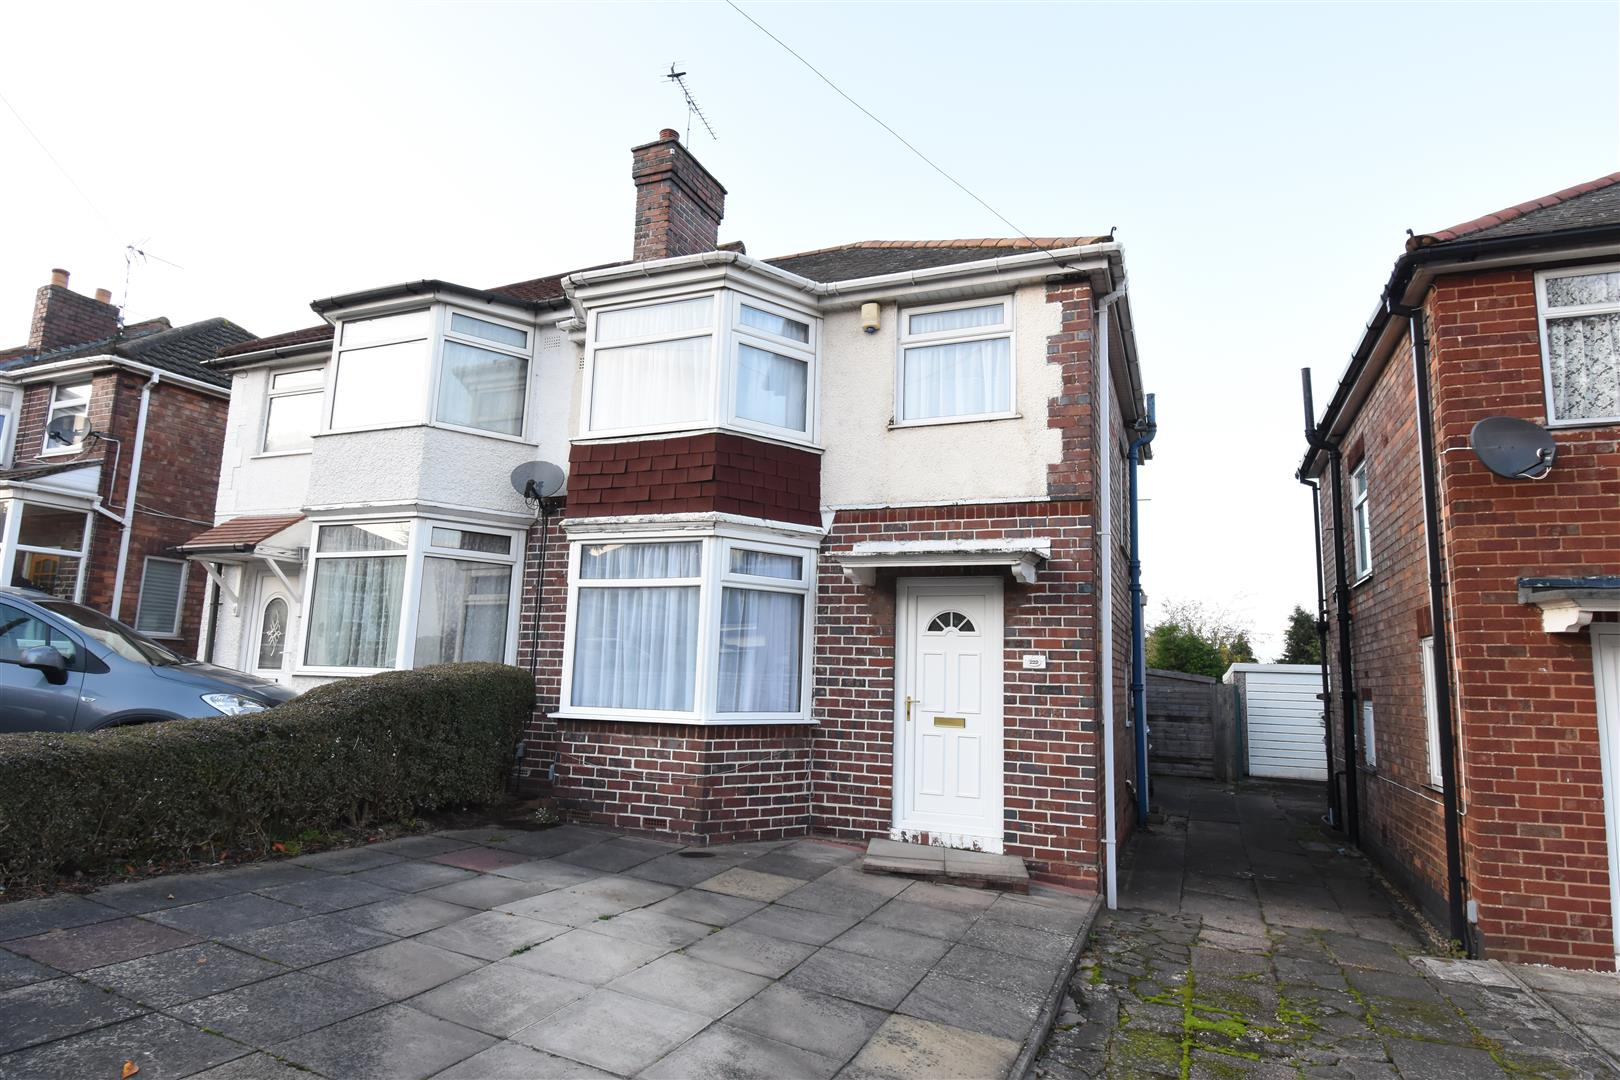 3 bed house for sale in Ermington Crescent, Castle Bromwich, Birmingham, B36